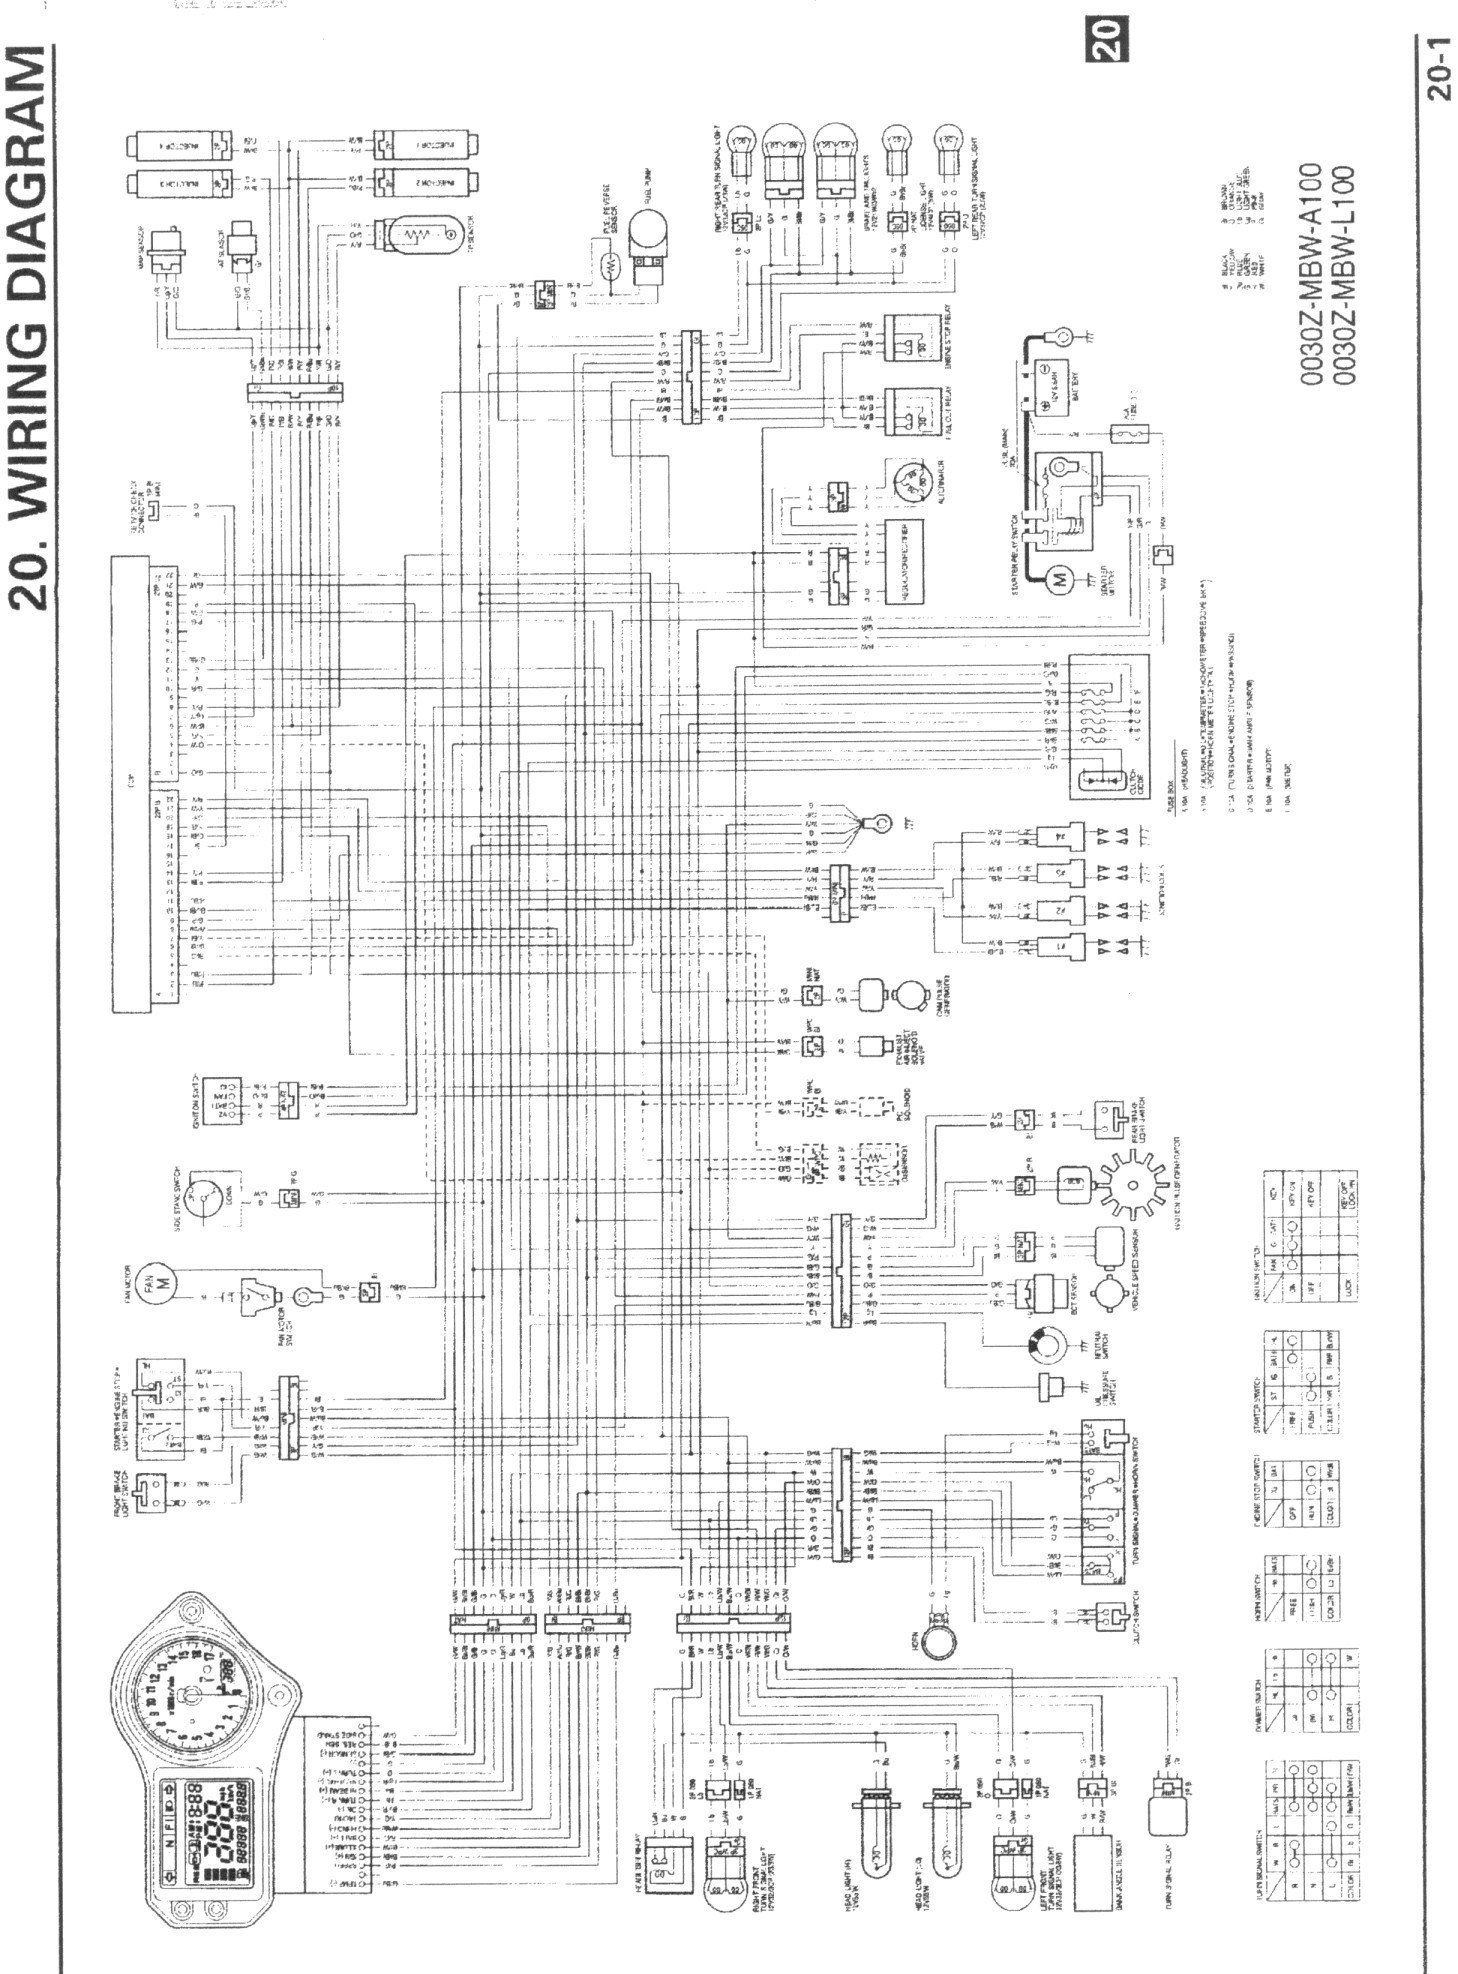 Cbr 600 F4i Headlight Wiring Diagram